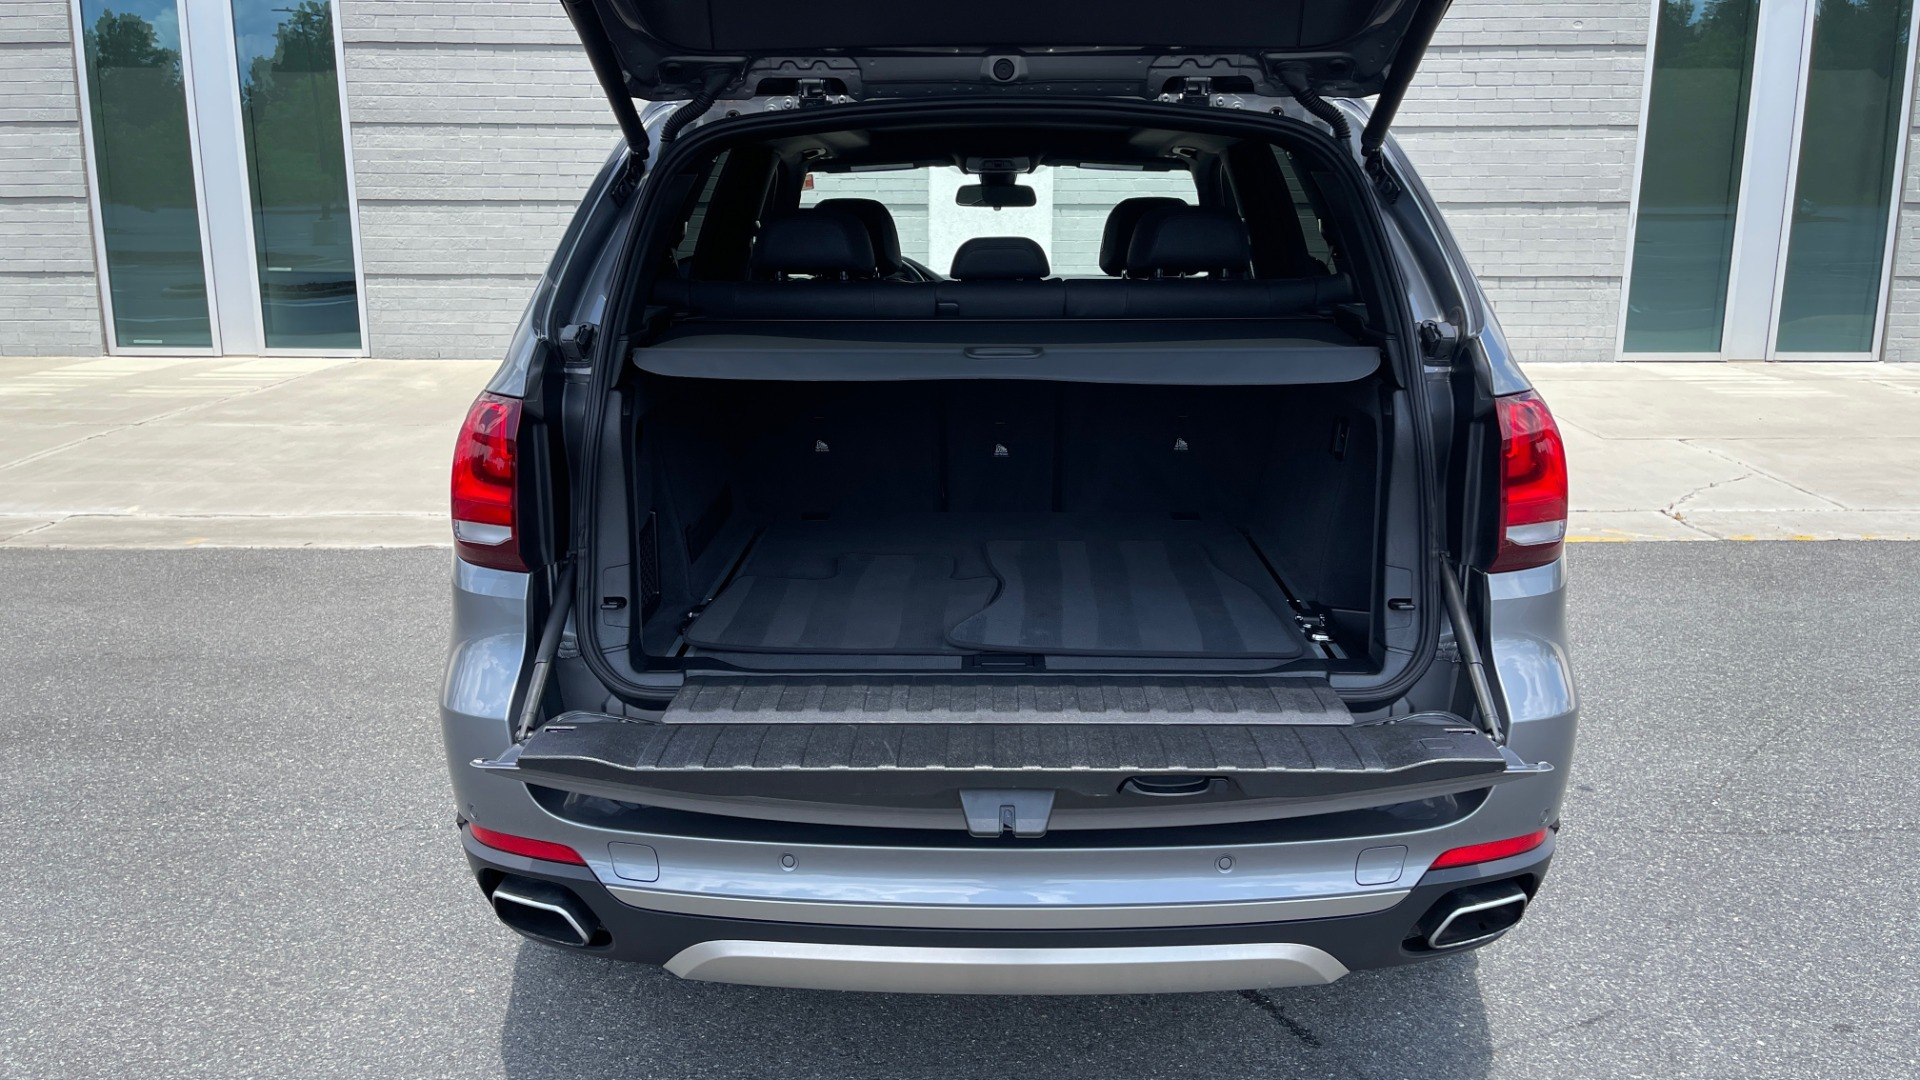 Used 2018 BMW X5 XDRIVE35I PREMIUM / DRVR ASST / WIRELESS CHARGING / CAMERAS for sale $46,995 at Formula Imports in Charlotte NC 28227 20